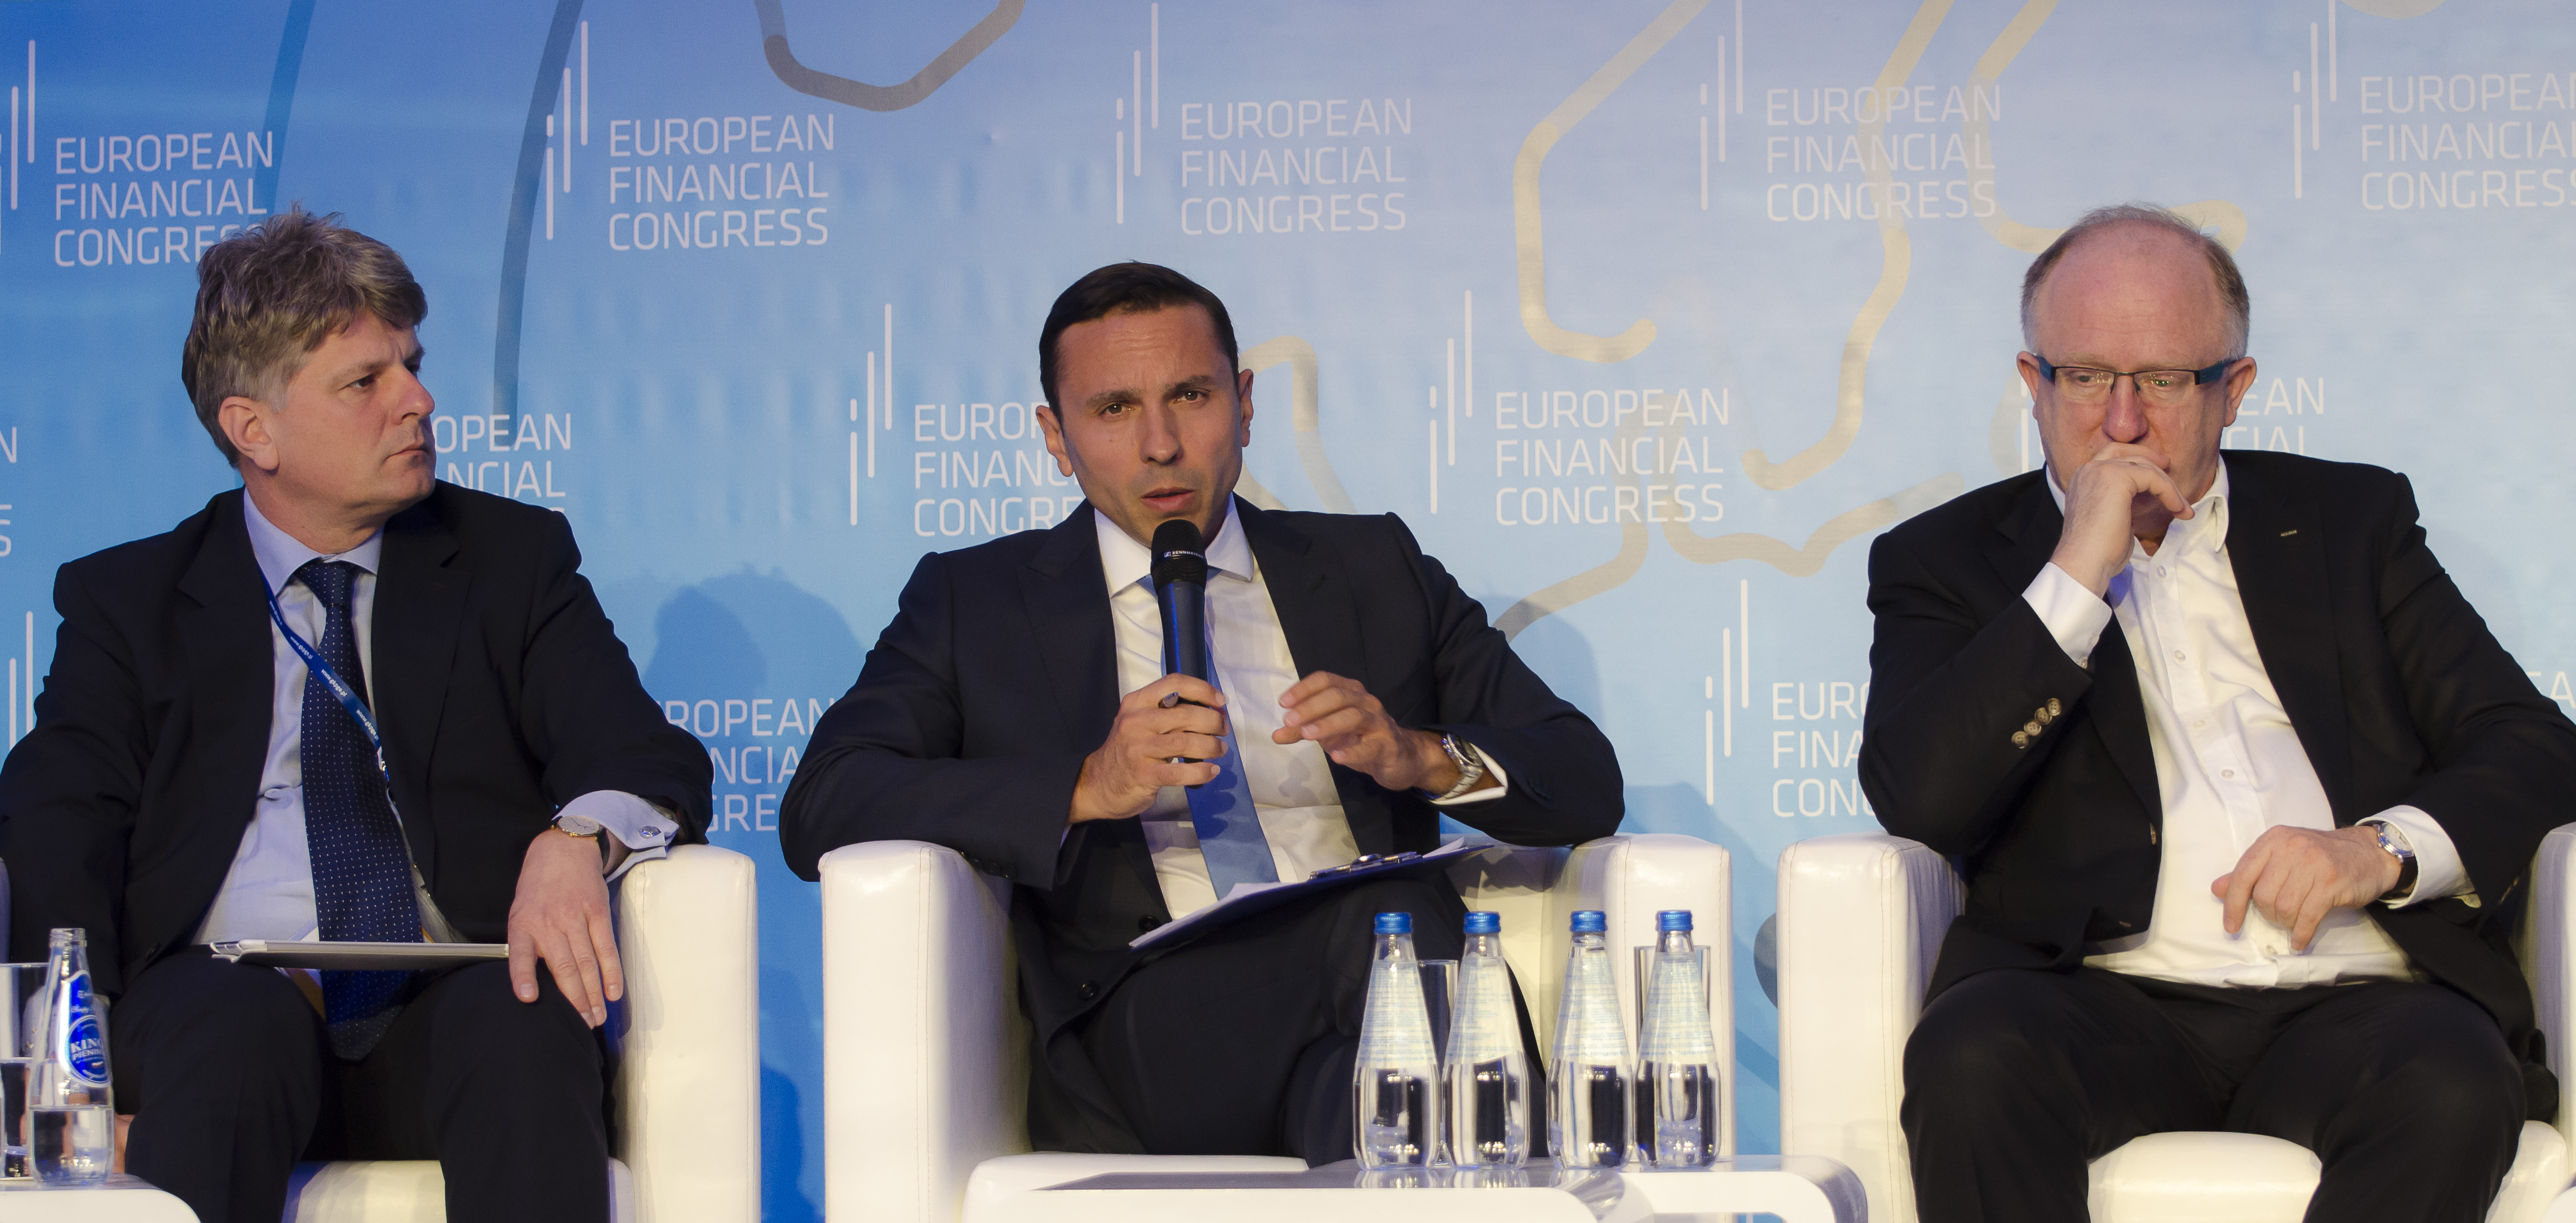 European Financial Congress 2014 - International expansion of Polish raw material companies: an opportunity for the Polish economy and science